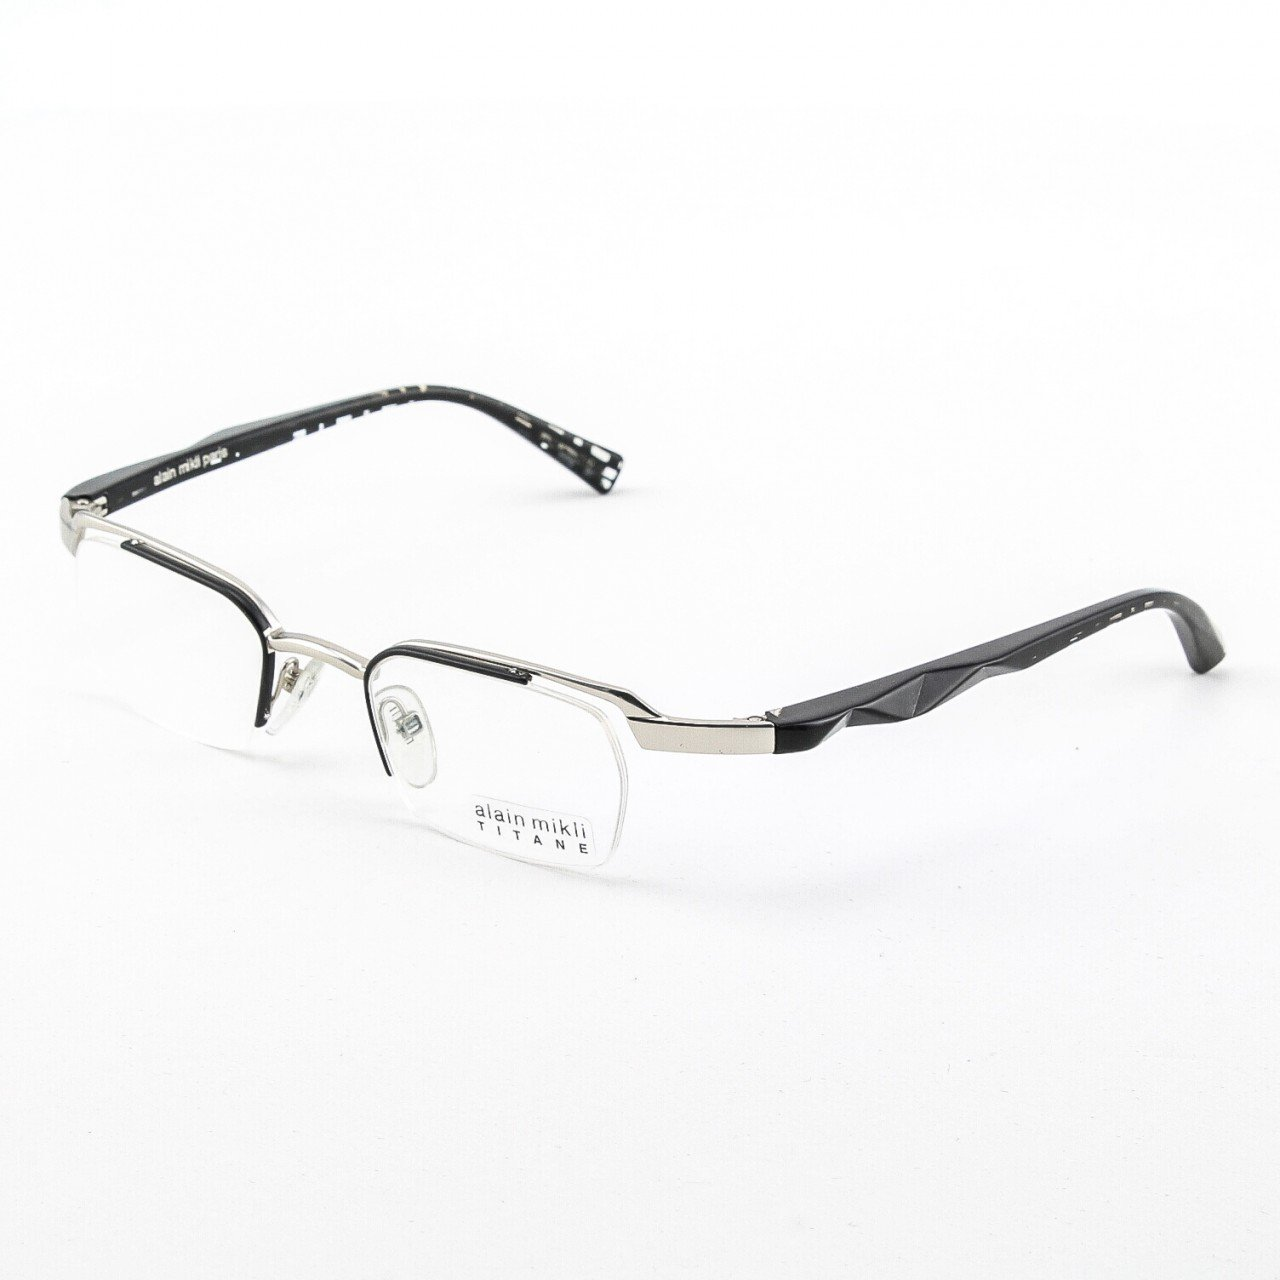 Alain Mikli Eyeglasses AL0556 Col. 8 Silver and Black Frame with Black Geometric Temples